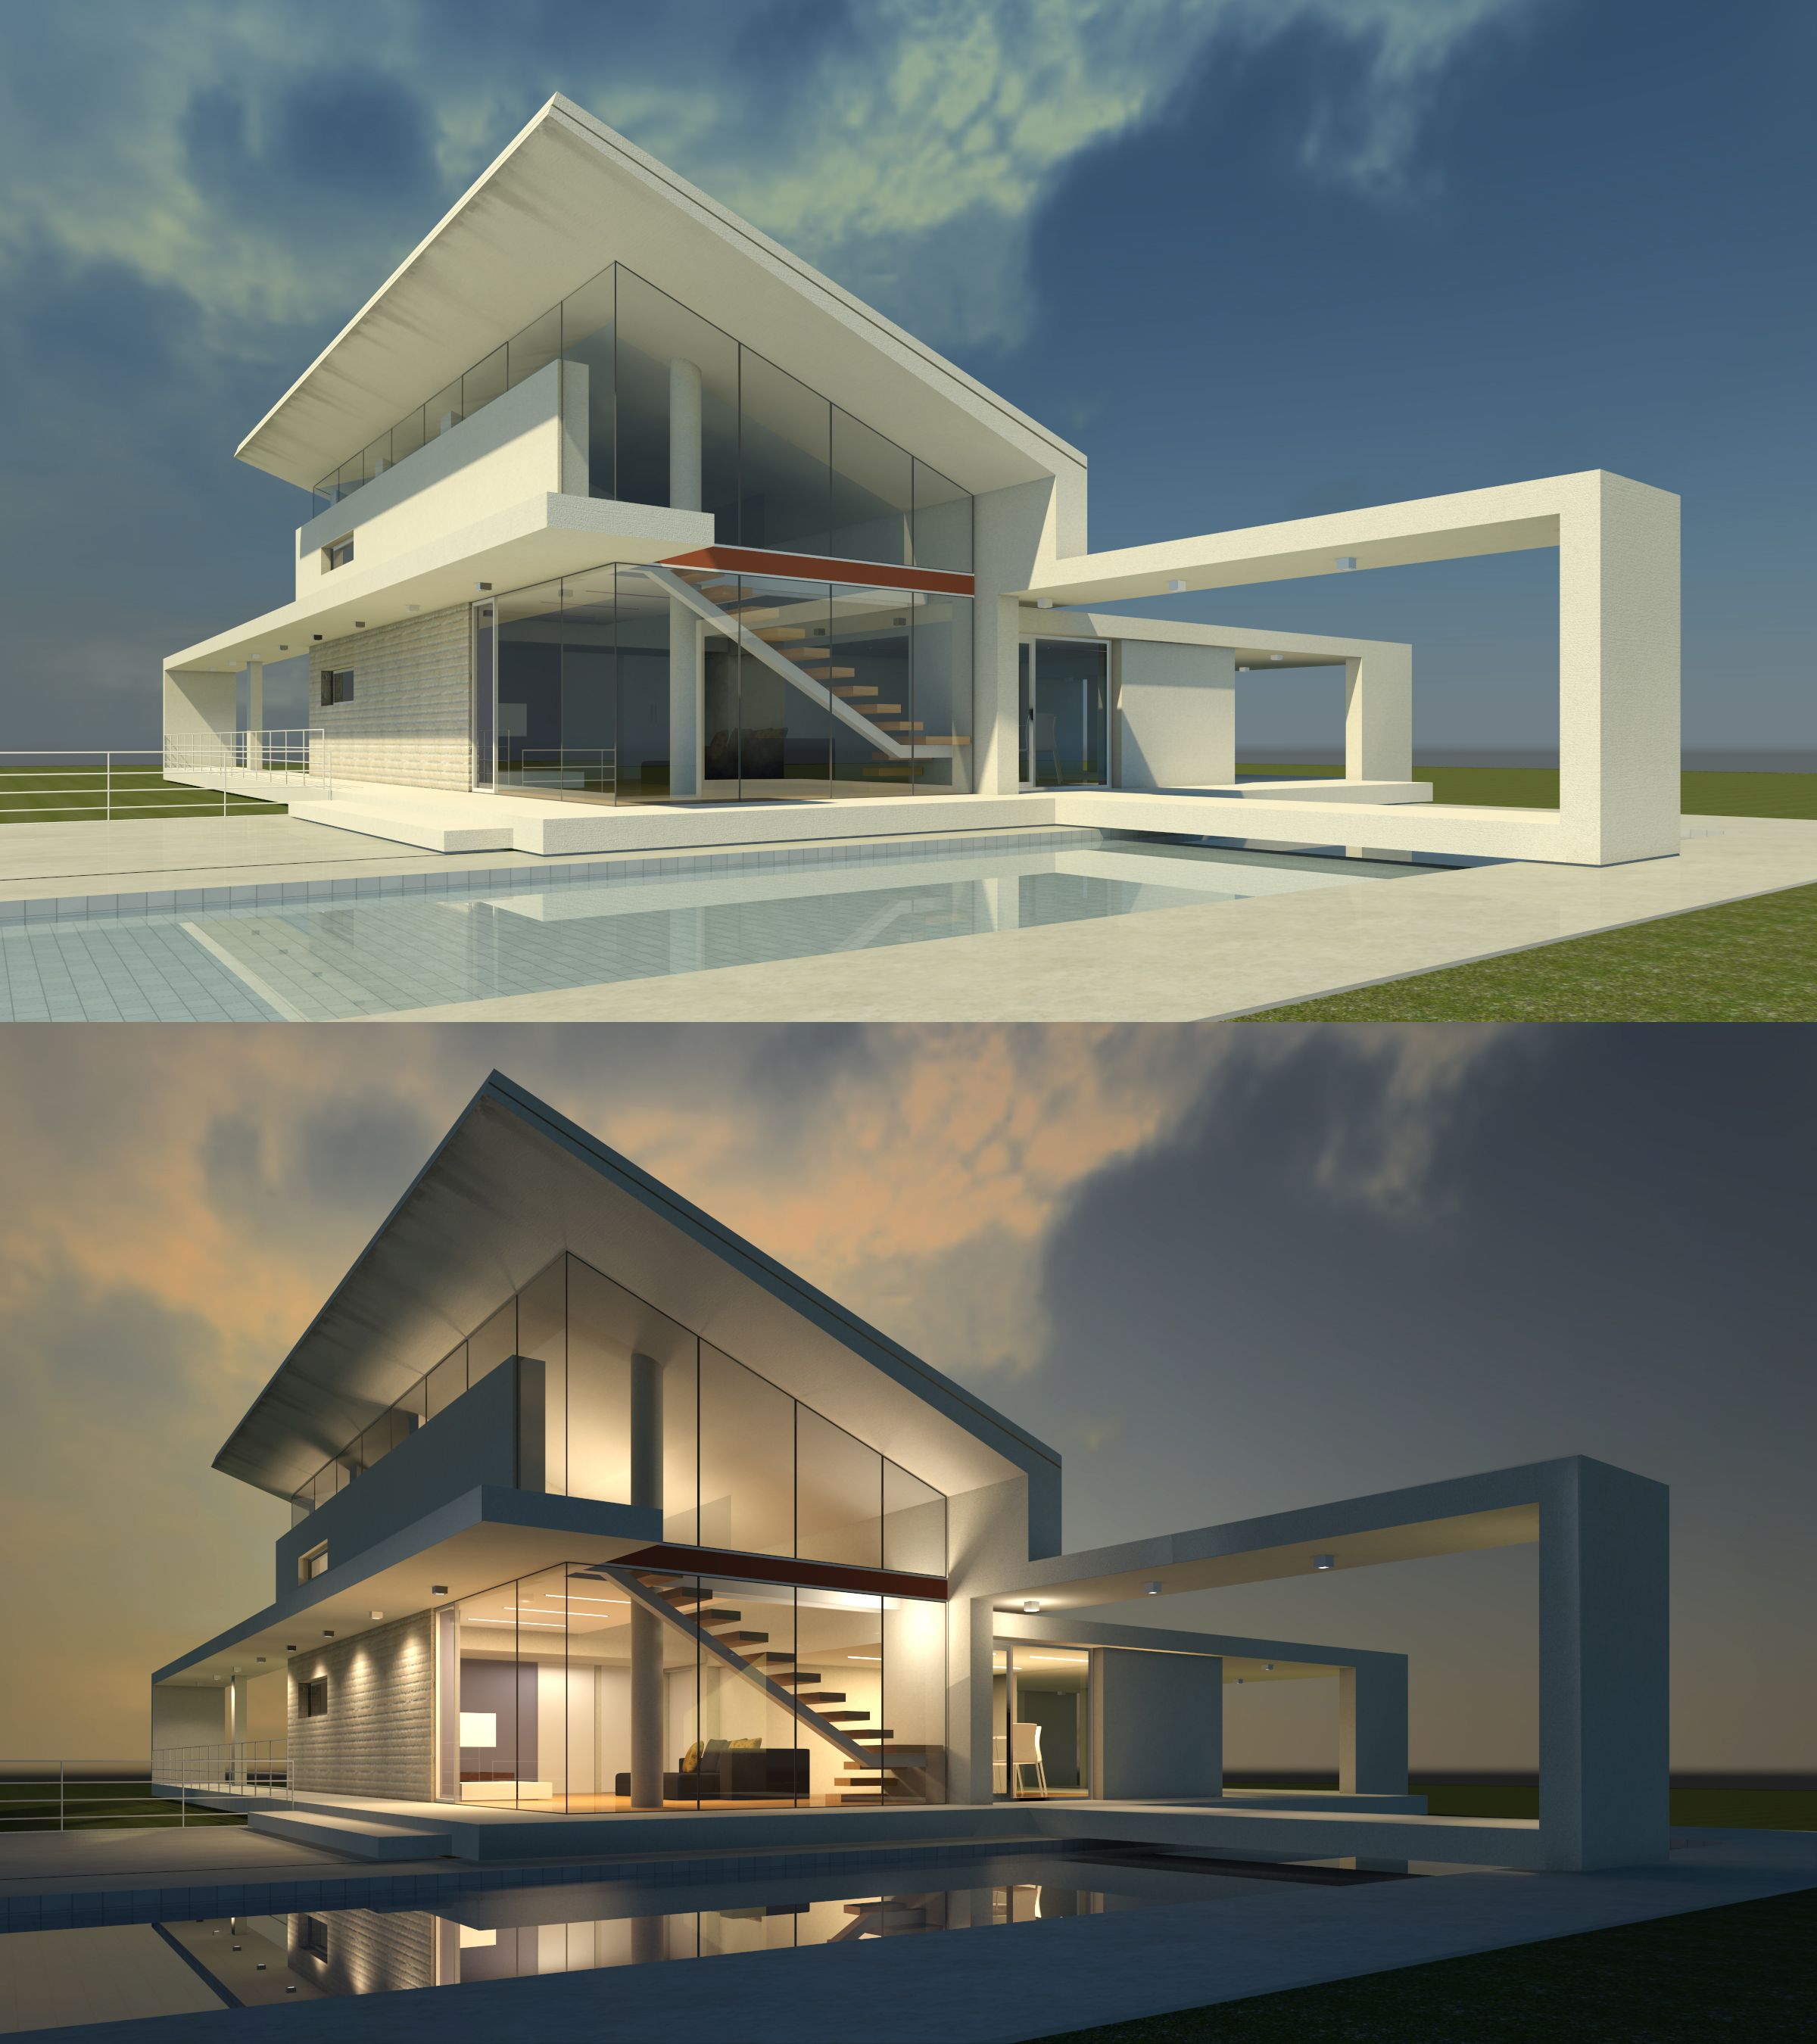 exterior house designs 3d max. 3d max exterior design  day and night Ri Akademi 3D Max